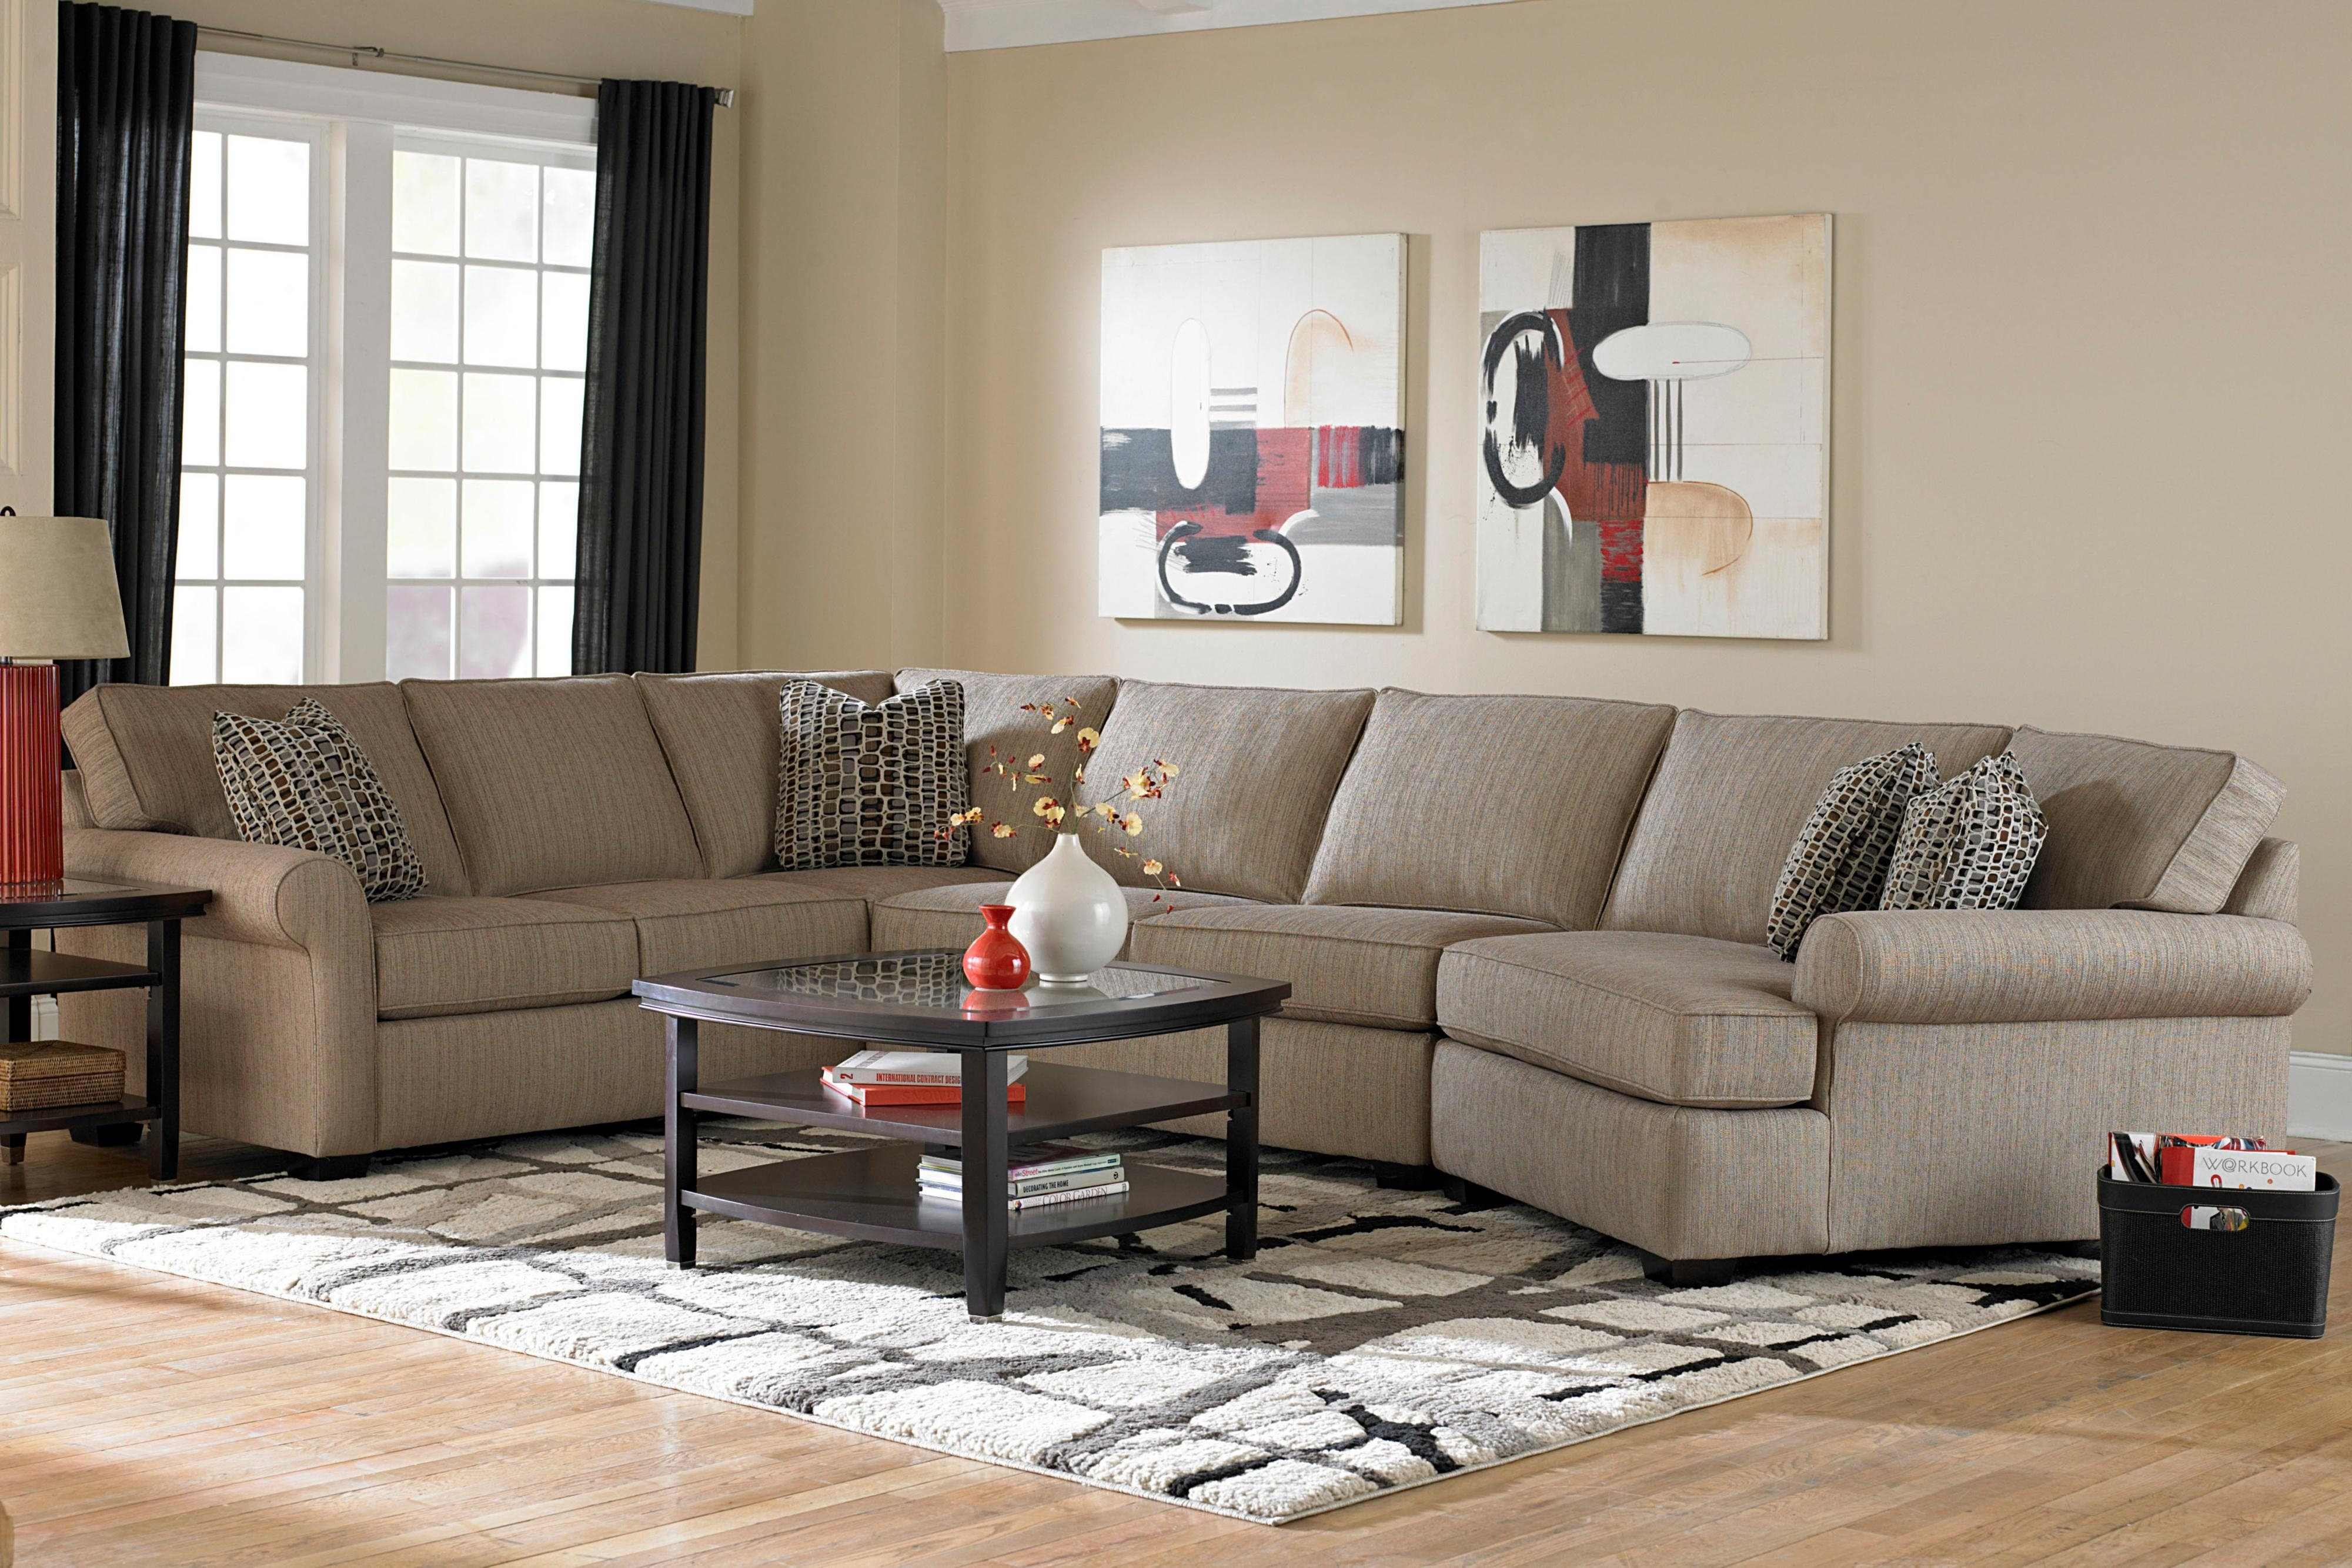 Broyhill Furniture Ethan Transitional Sectional Sofa With Right Intended For Evansville In Sectional Sofas (View 8 of 10)